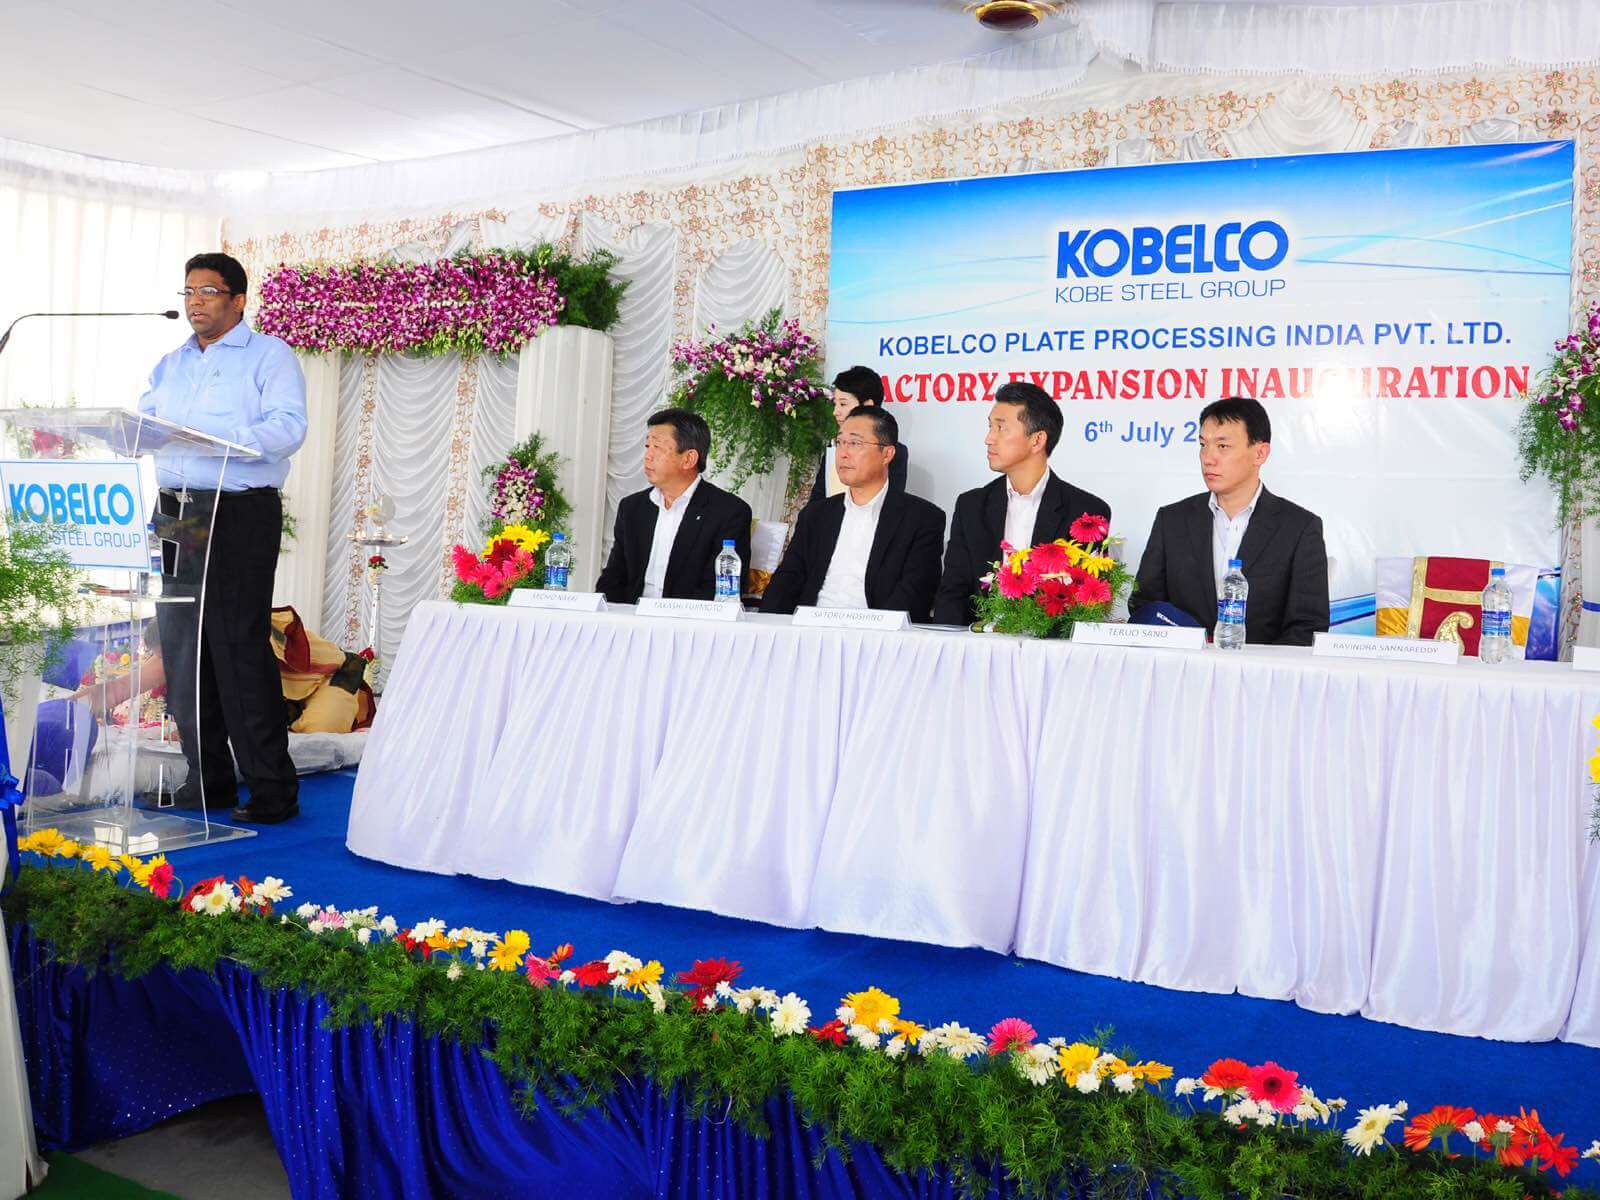 Kobelco Plate Processing & Piolax Inaugurate Additional Production